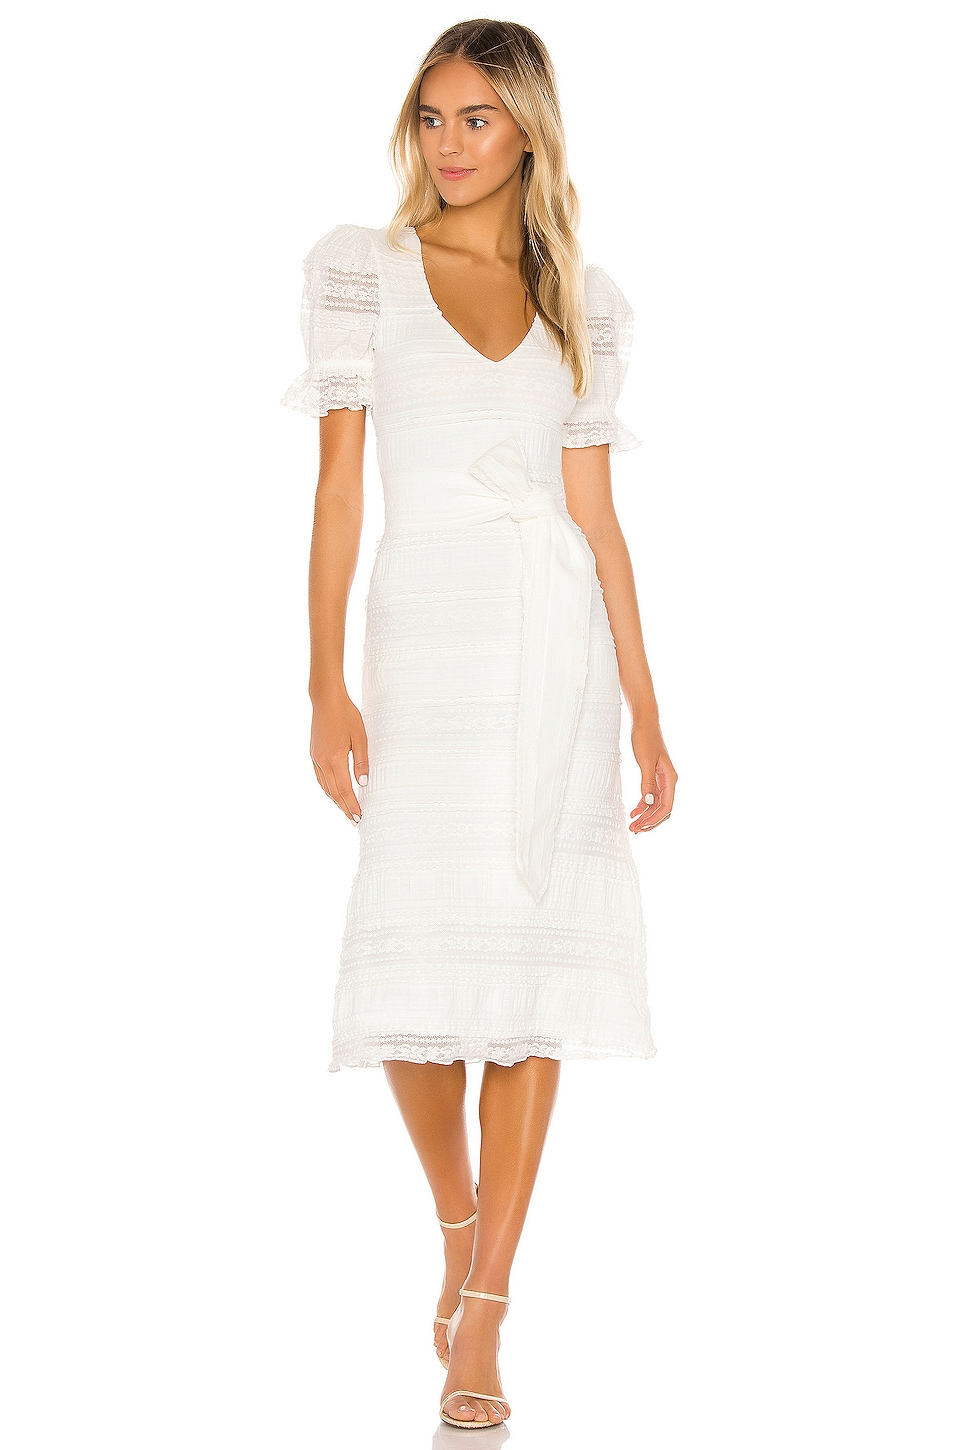 Quinn Midi Dress             Tularosa                                                                                                       CA$ 235.91 15